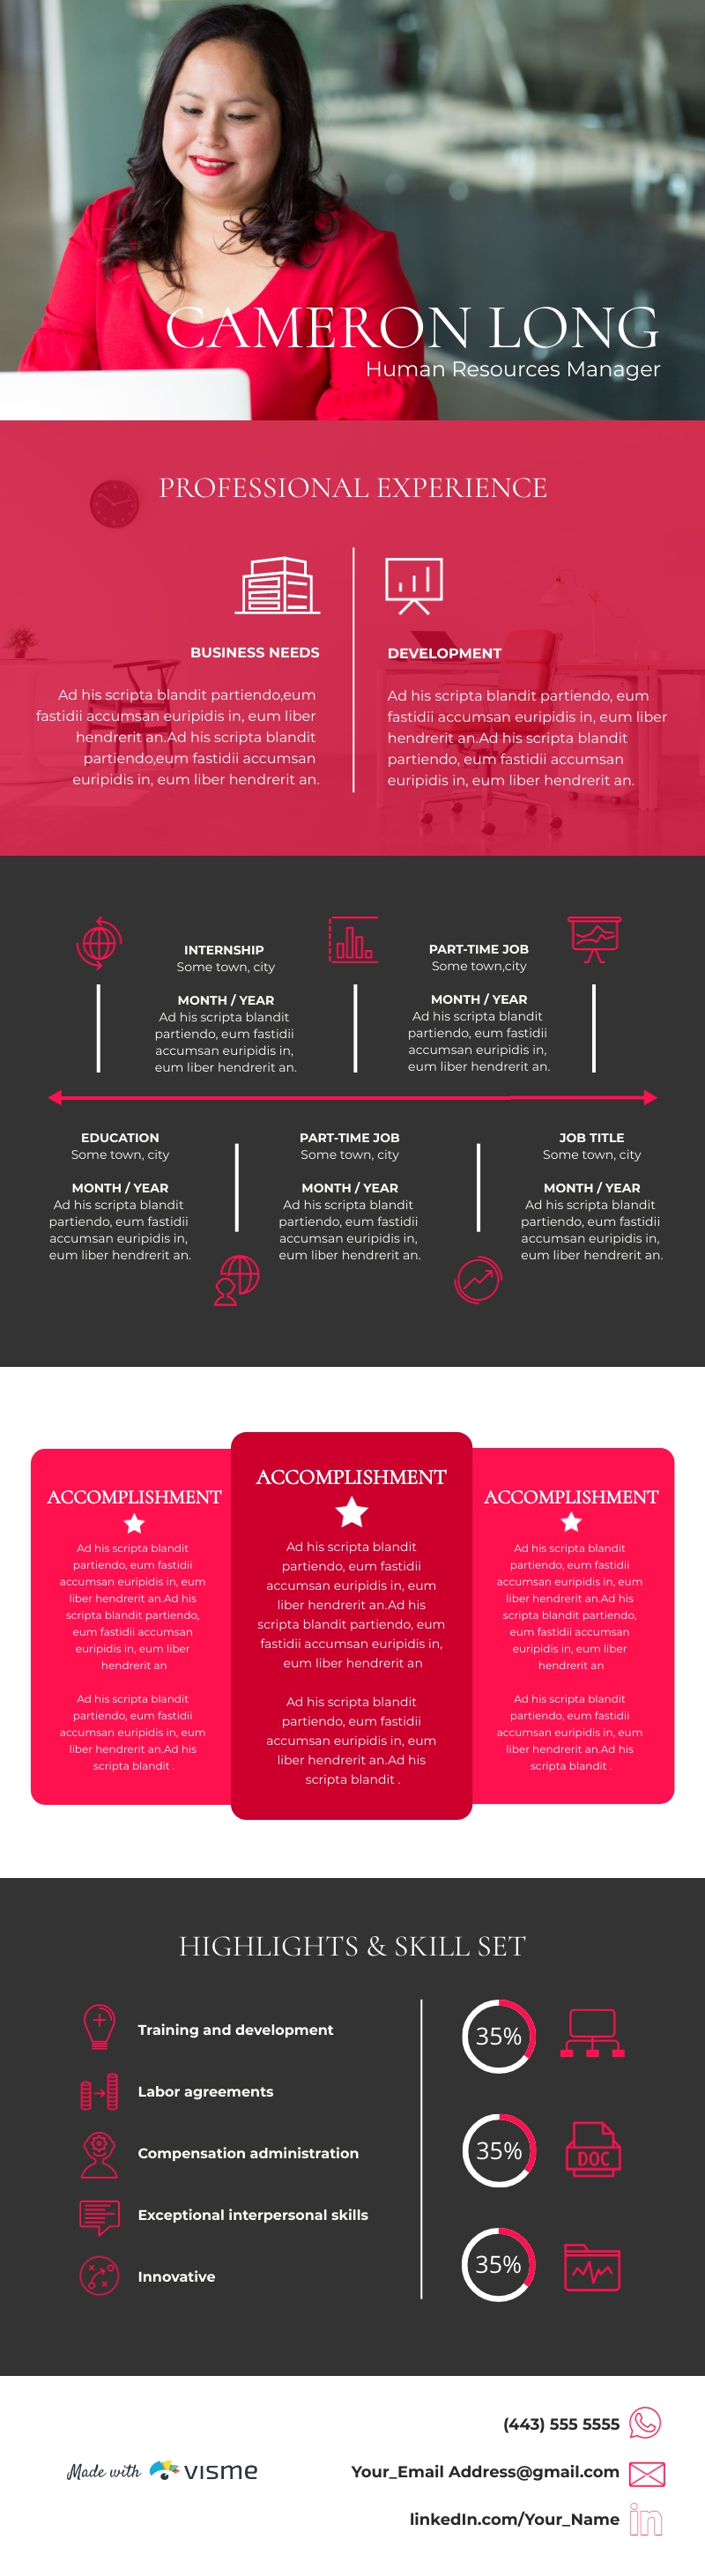 Human Resources Manager 1.0 Resume - Infographic Template